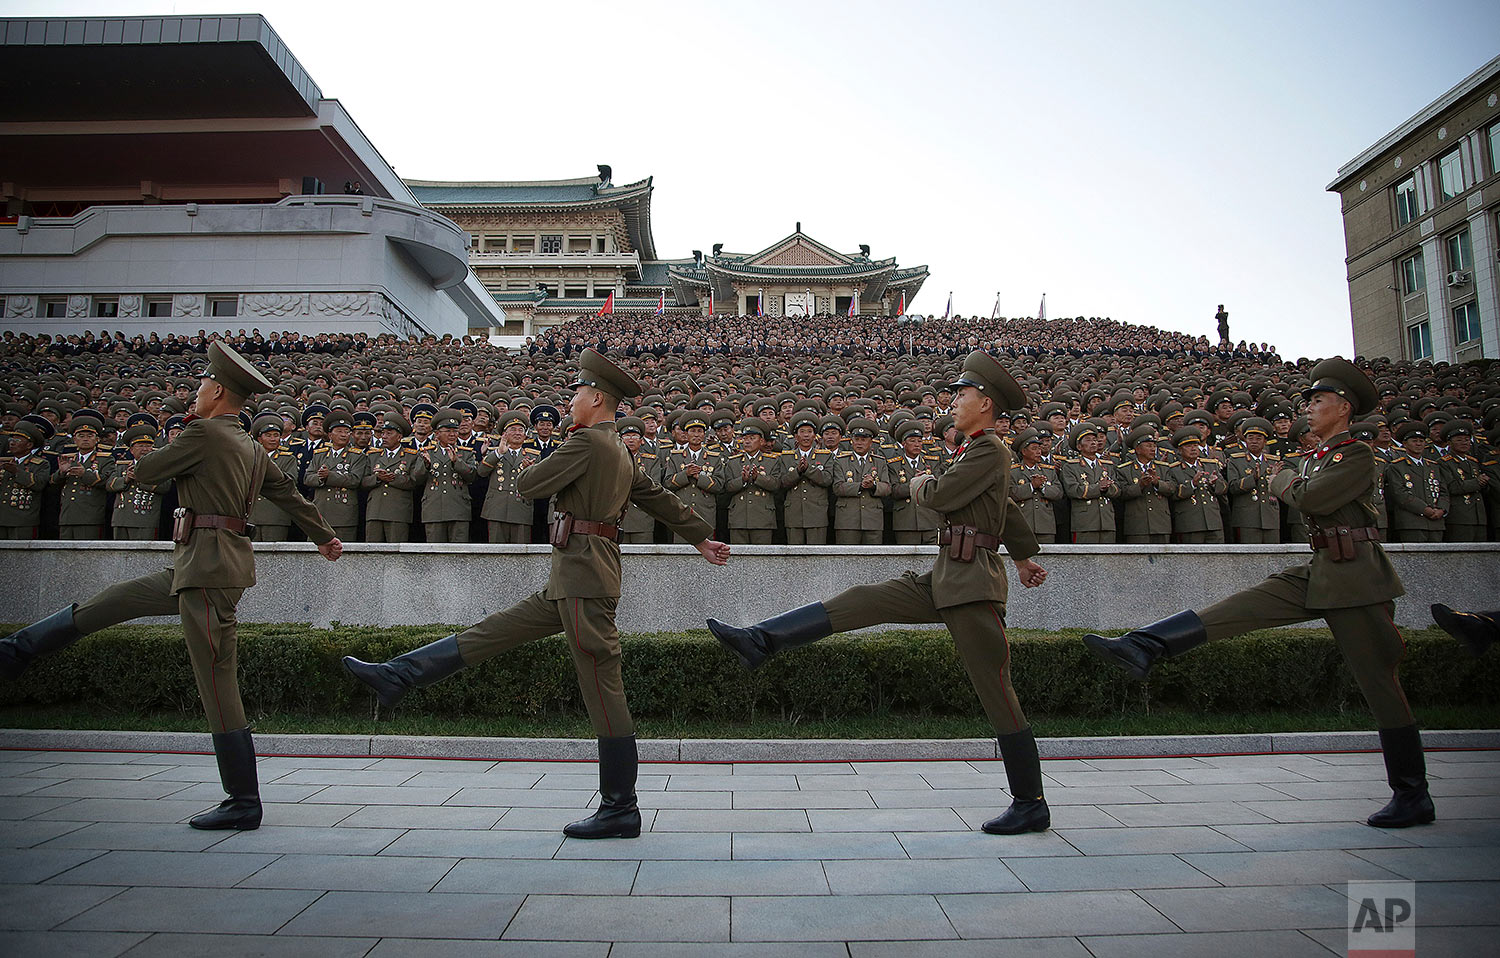 Soldiers march past veterans during a military parade in Pyongyang, North Korea, on Oct. 10, 2015. (AP Photo/Wong Maye-E)